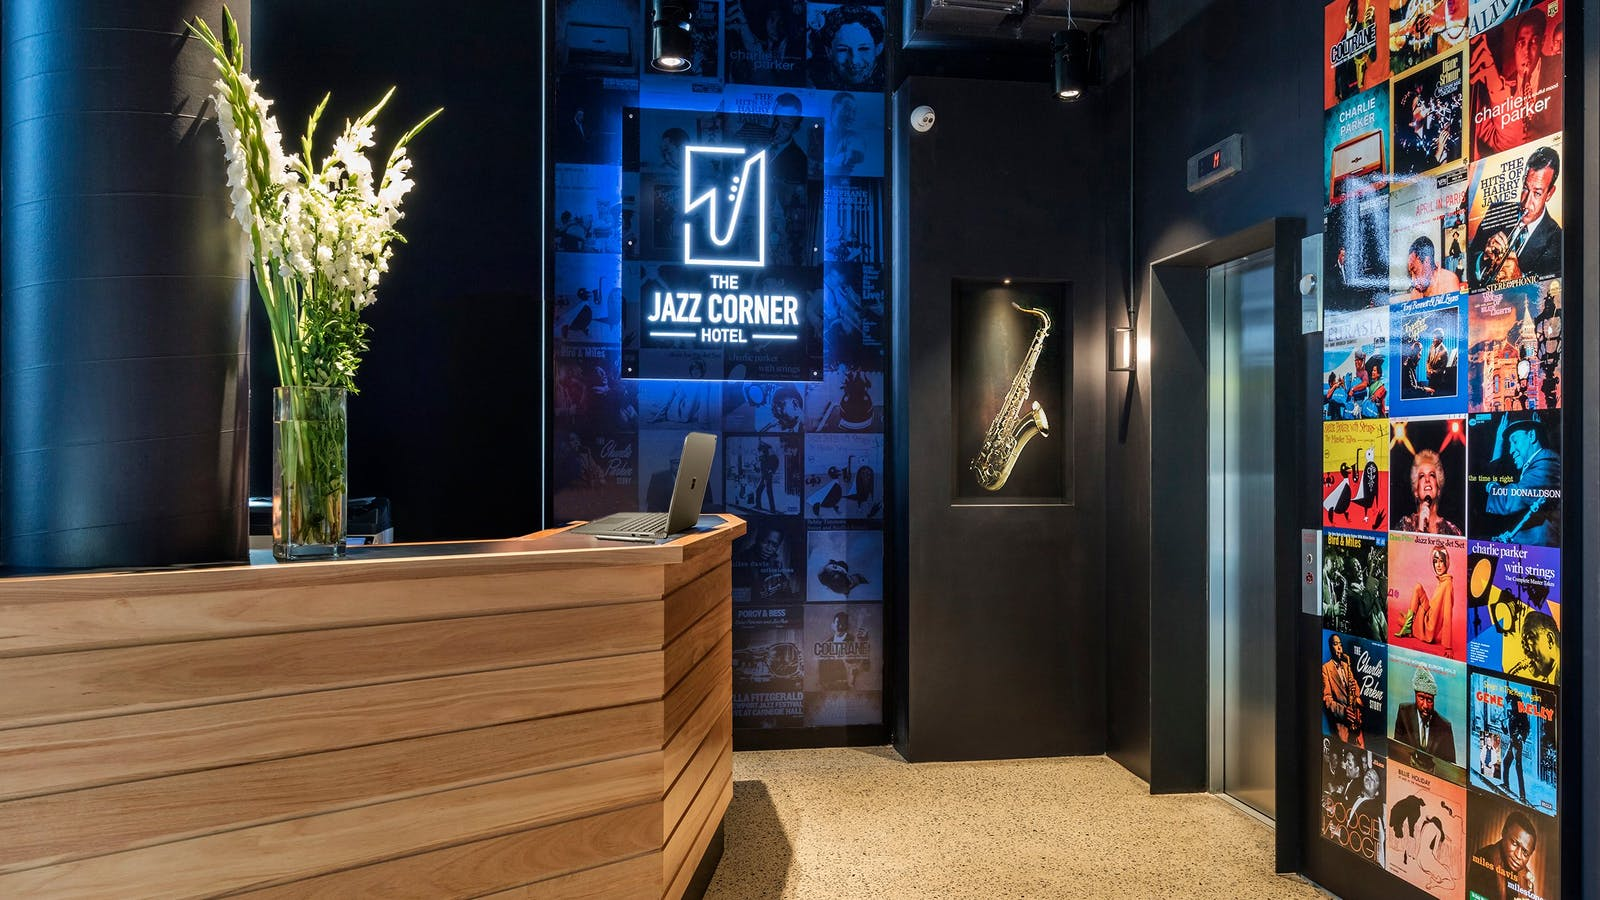 The Jazz Corner Hotel reception